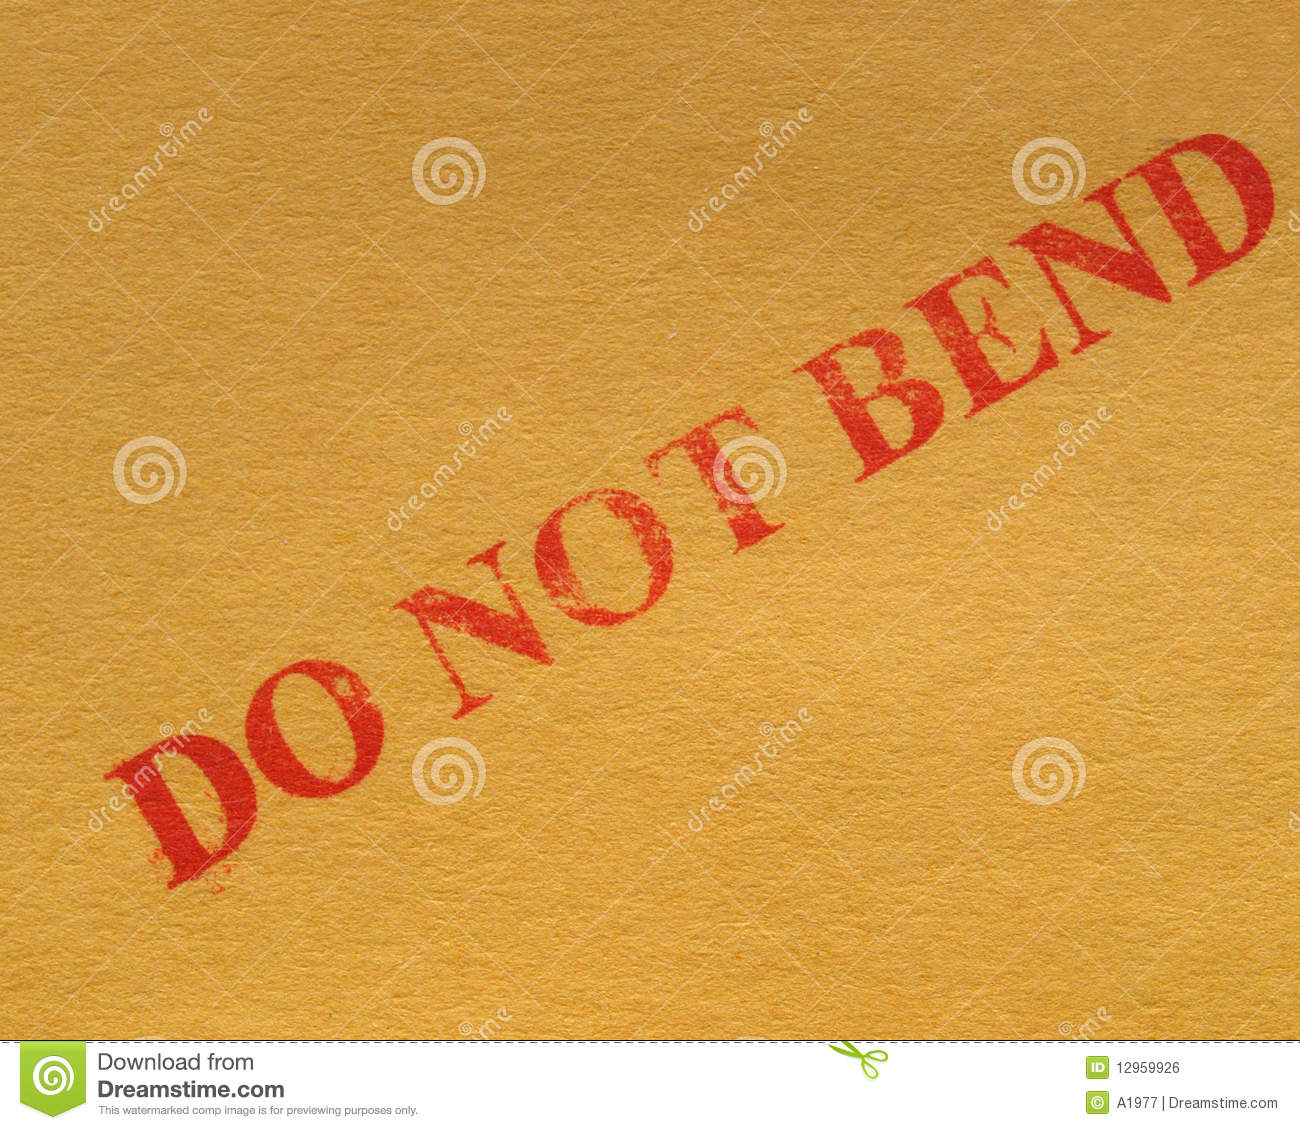 Do Not Bend Royalty Free Stock Image   Image  12959926